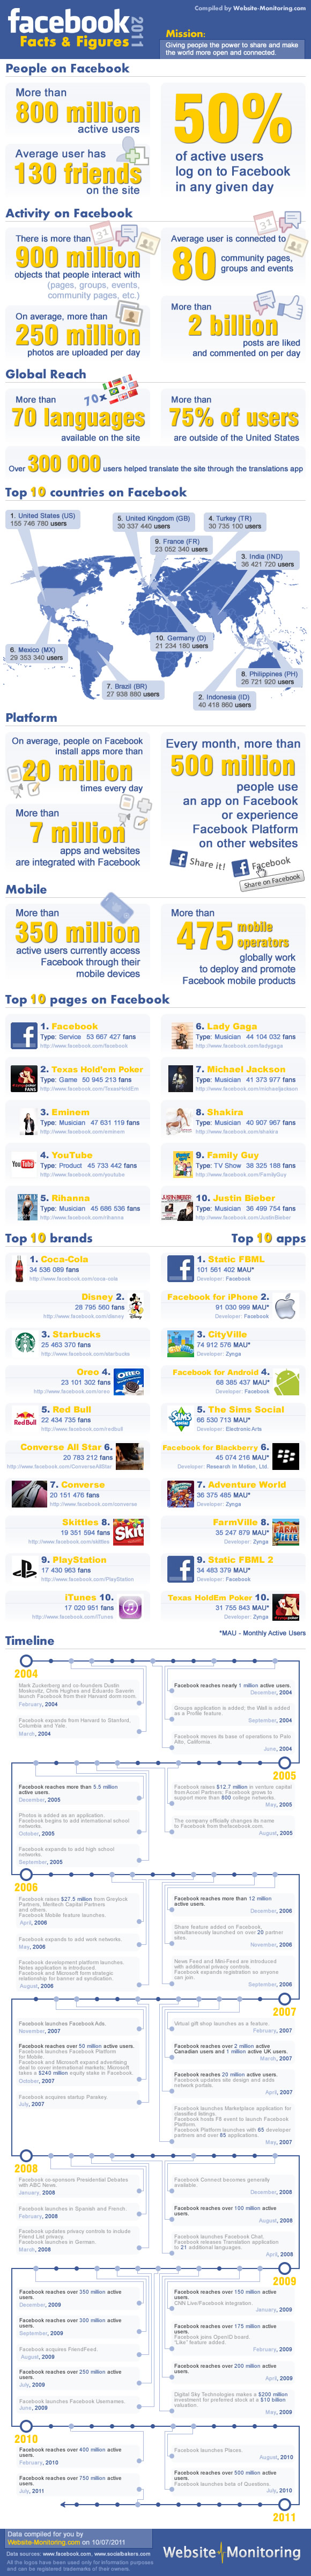 Facebook Facts and Figures 2011 (infographic)